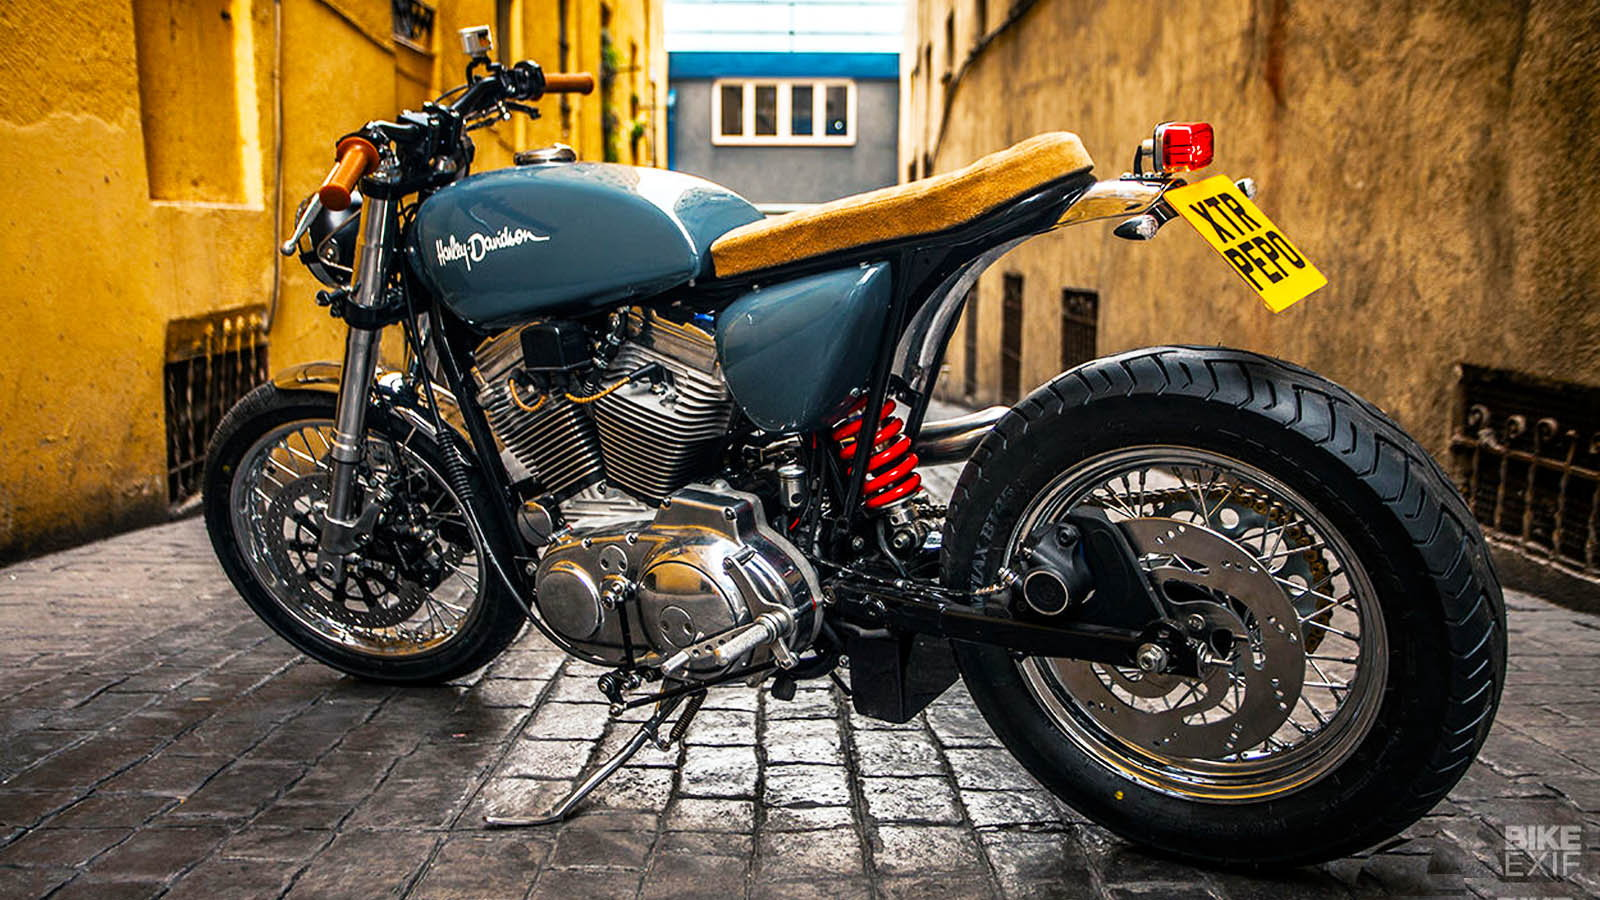 XTR Pepo's Take on the Sportster